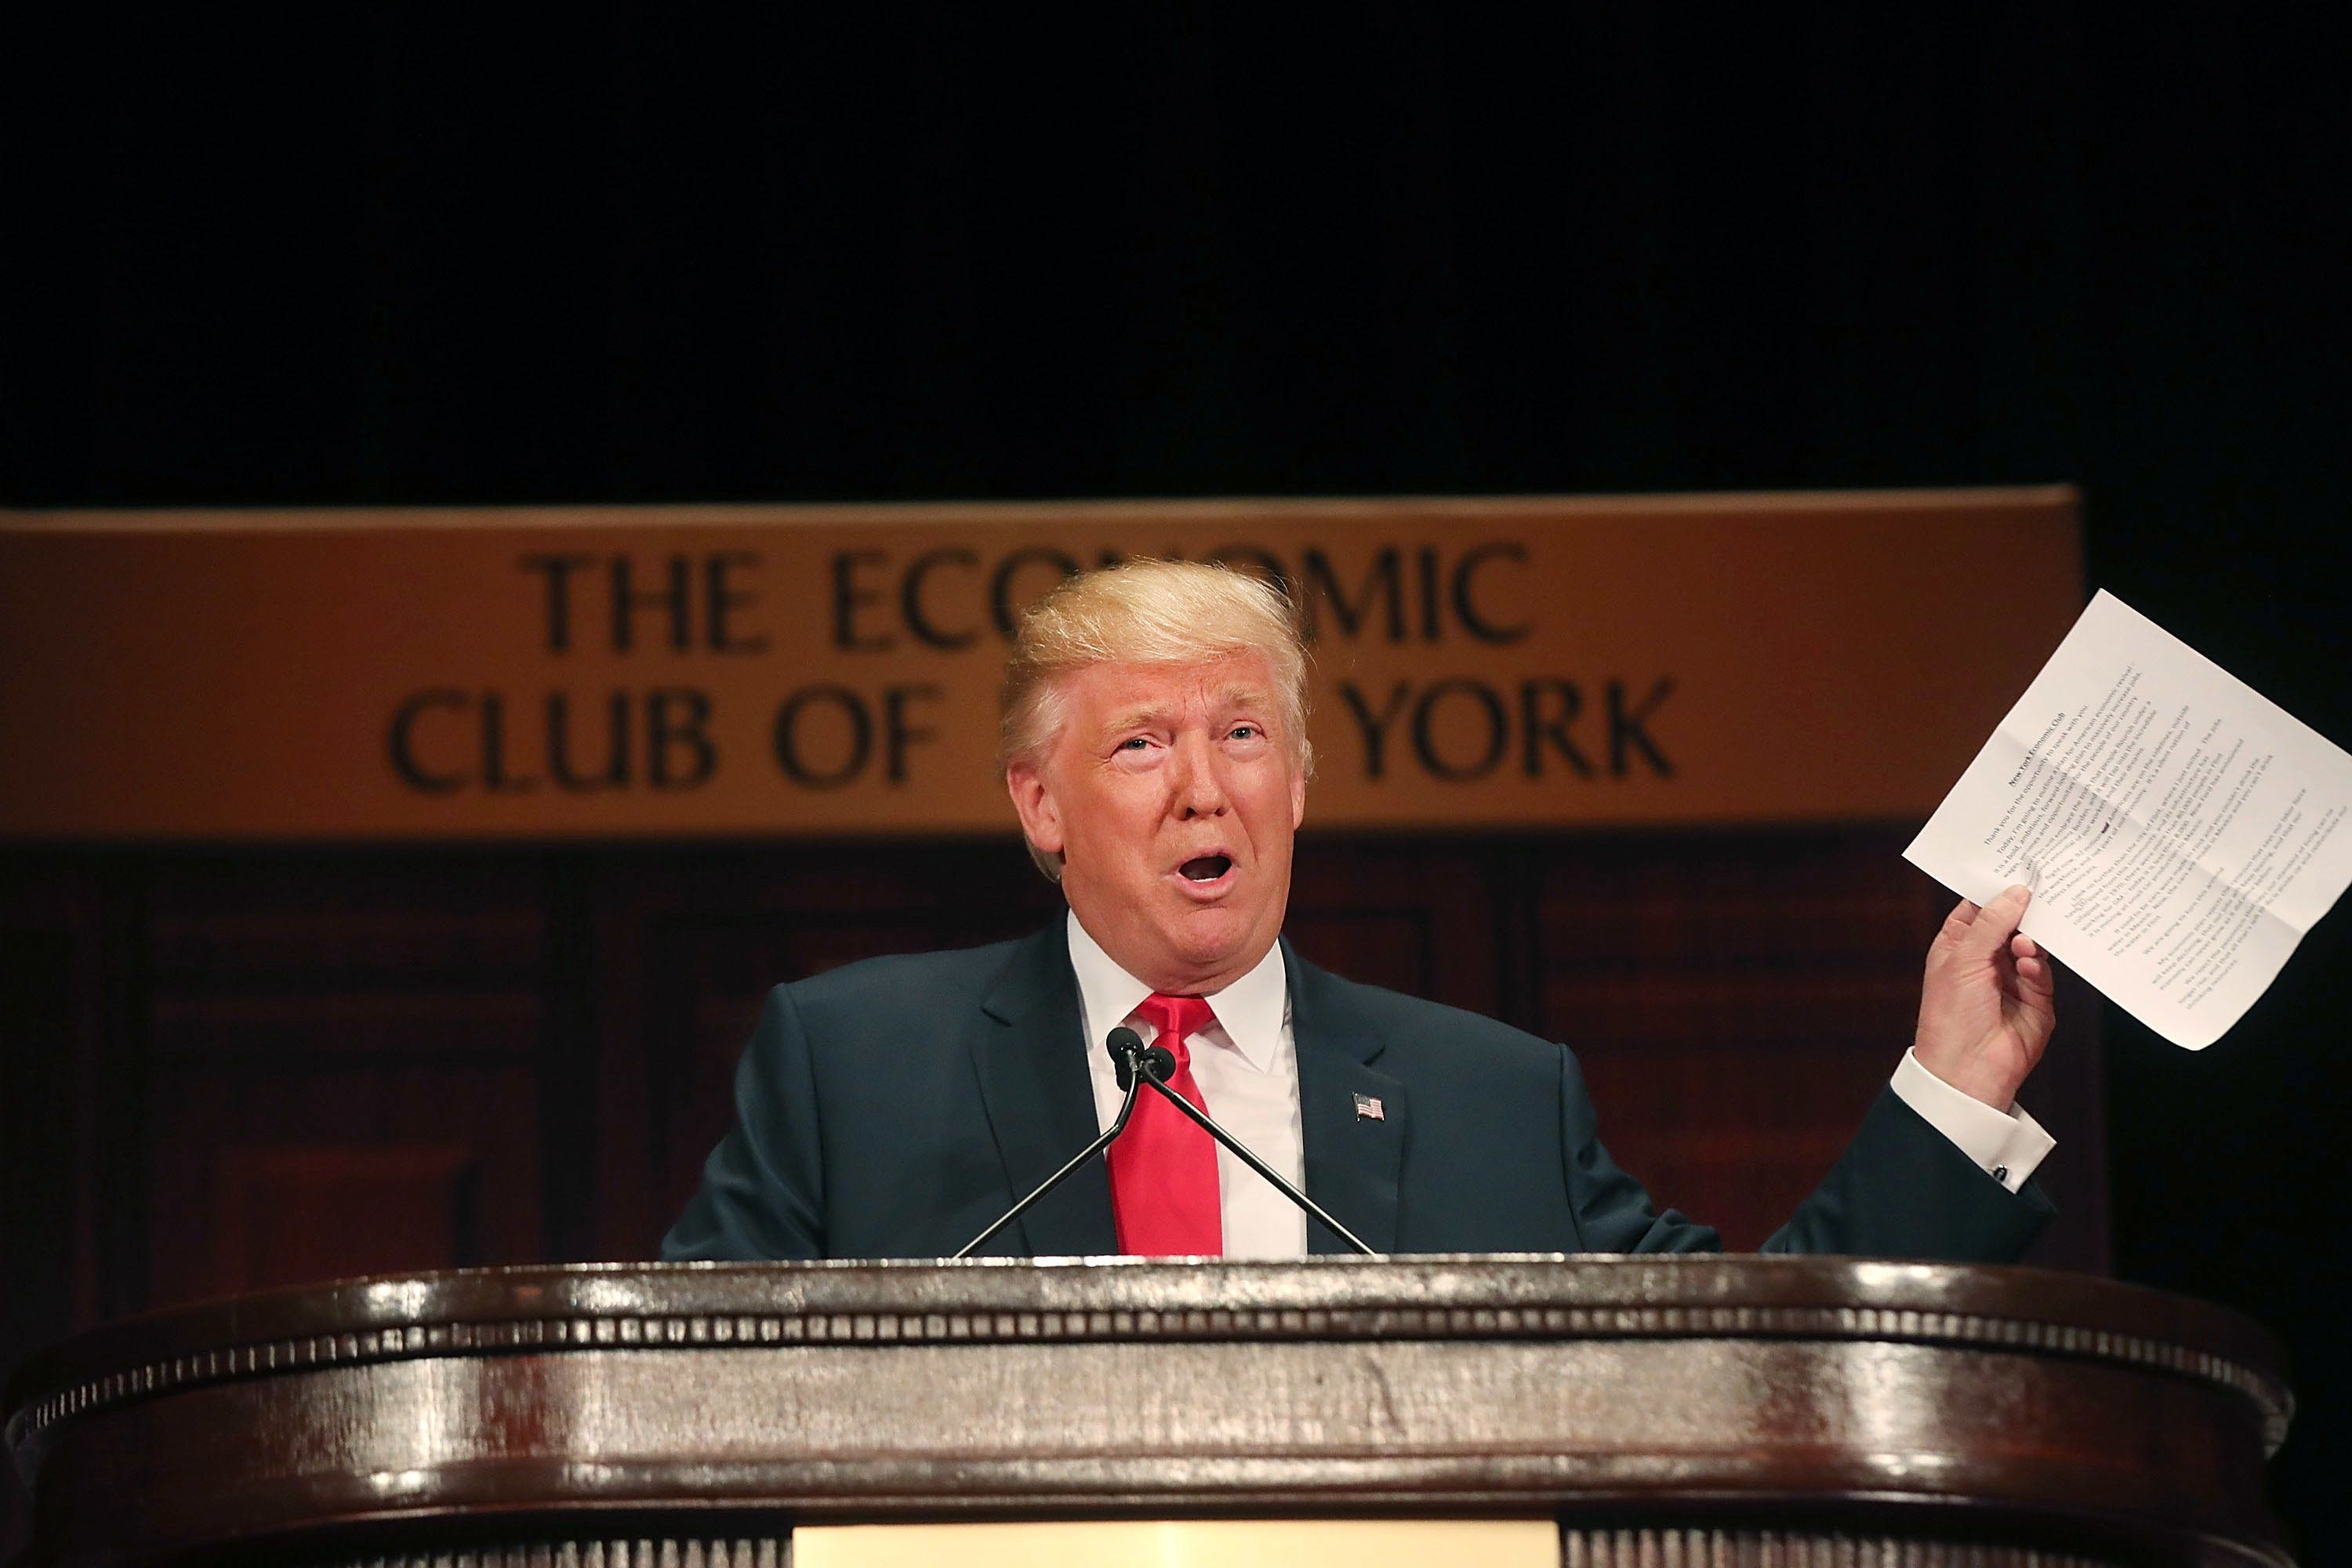 NEW YORK, NY - SEPTEMBER 15:  Republican presidential candidate Donald Trump speaks at a lunch hosted by the Economic Club of New York on September 15, 2016 in New York City. According to a report by Oxford Economics, if Trump is elected to the White House growth in the US would be about 5 per cent lower than would otherwise be expected by 2021.  (Photo by Spencer Platt/Getty Images,)